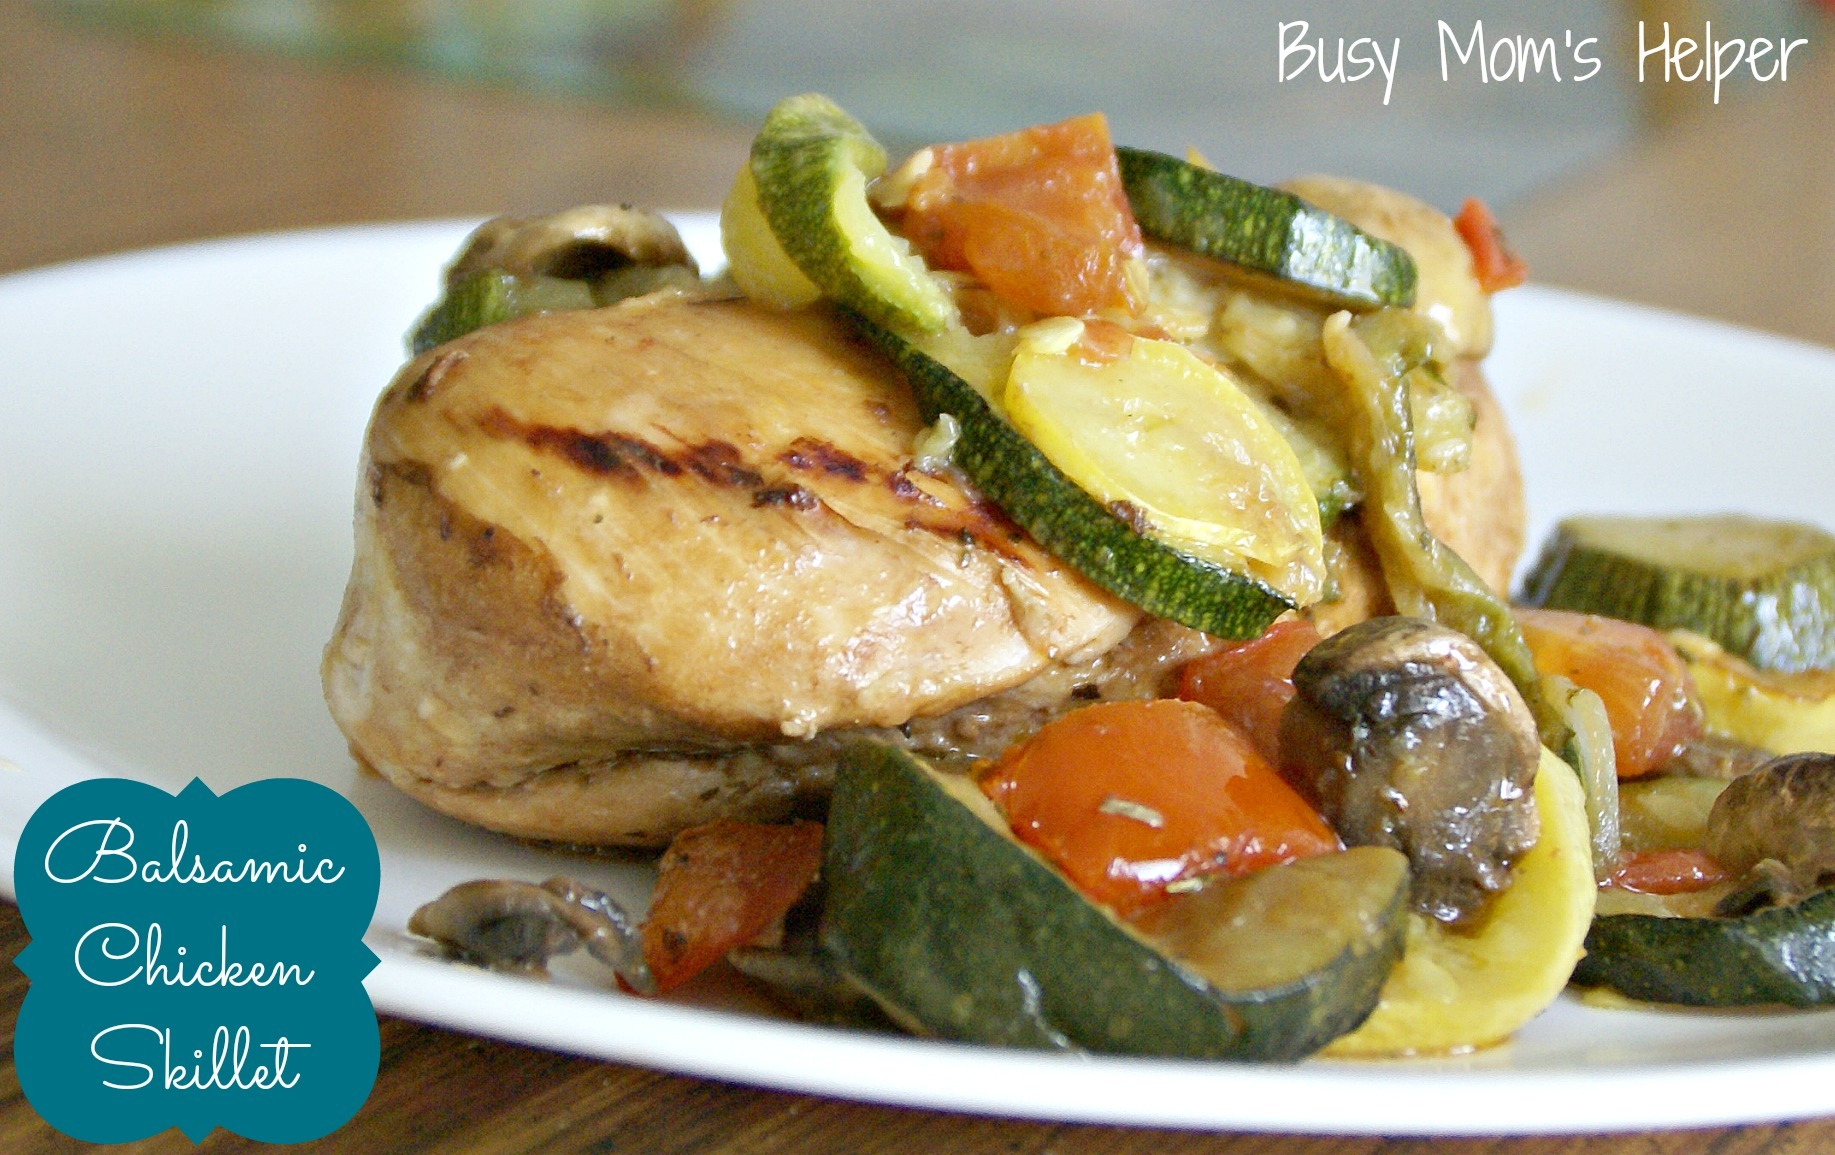 Balsamic Chicken Skillet with Veggies - Busy Moms Helper